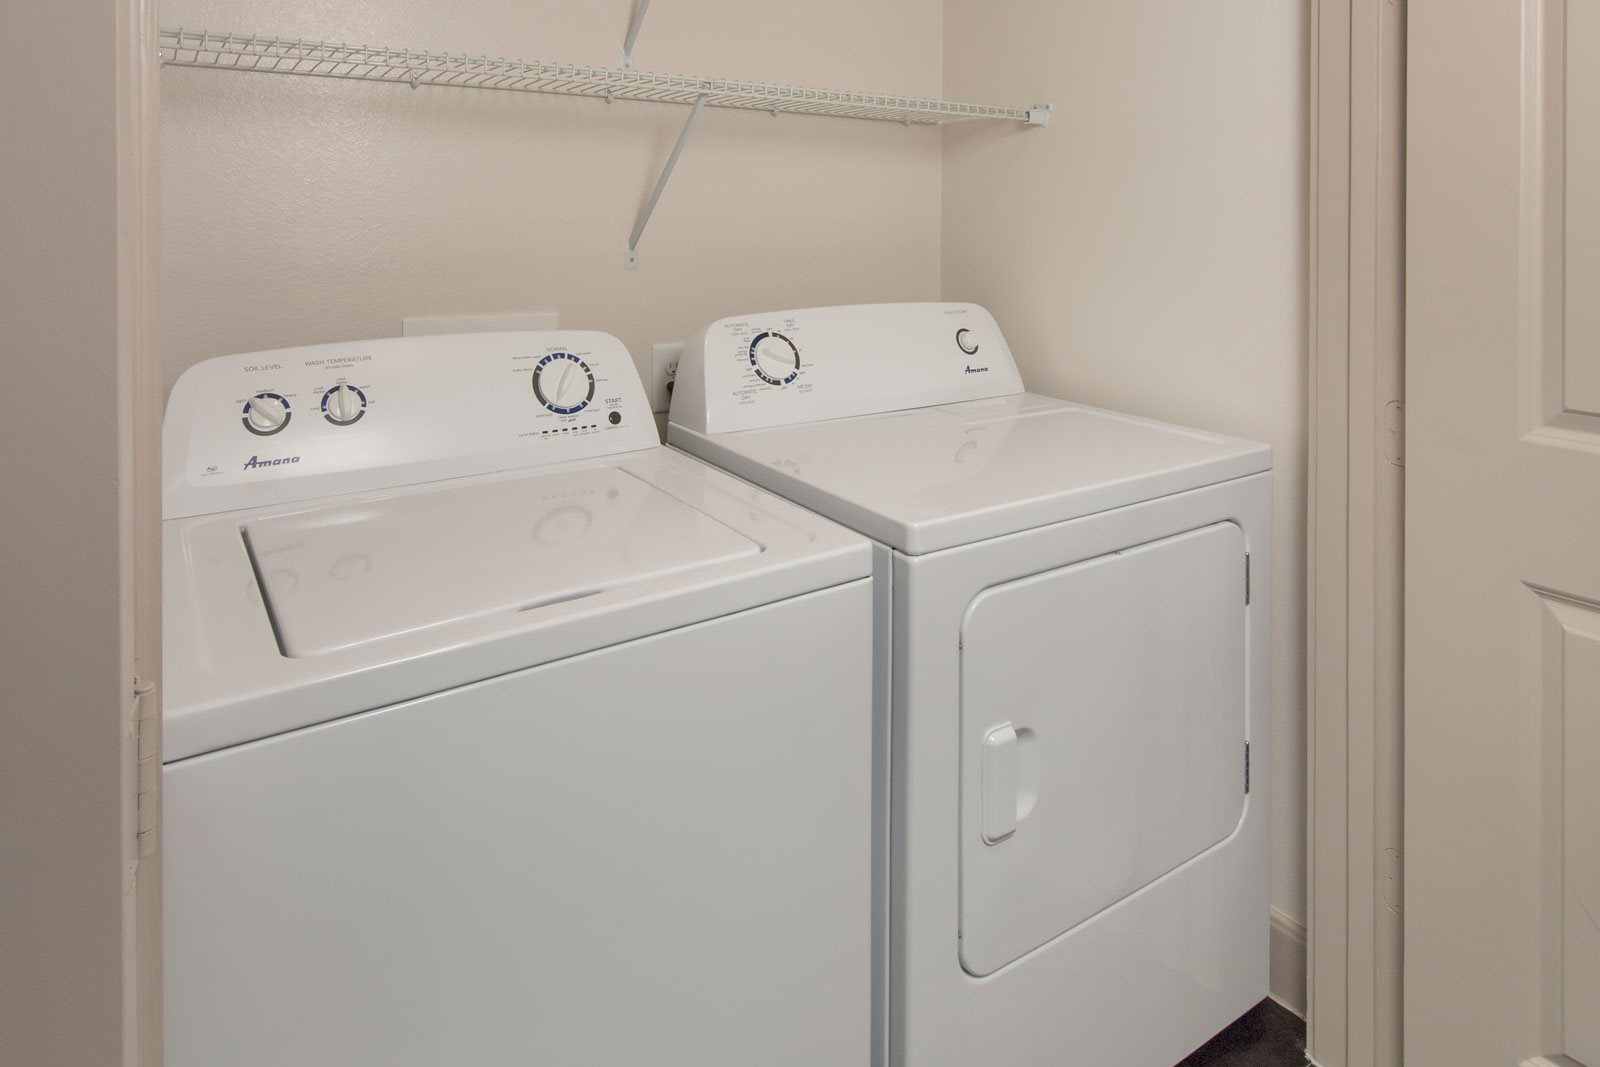 Full-Size Washers and Dryers at Midtown Houston by Windsor, Houston, TX